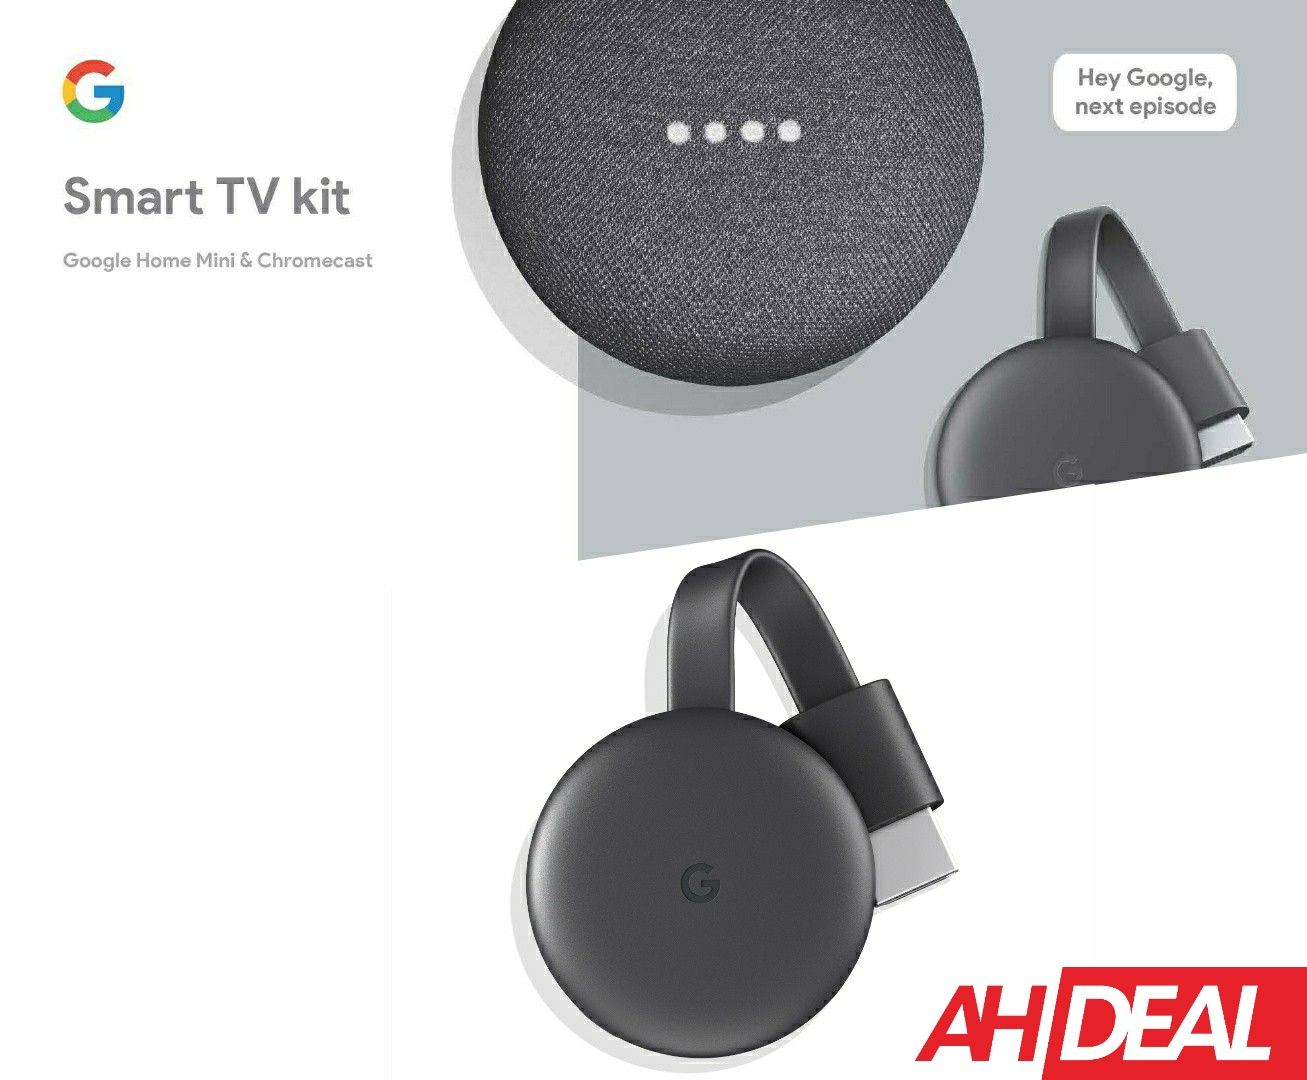 3rd Gen Google Chromecast 25 Google Smart Tv Kit 45 Walmart Cyber Monday 2018 Deals Smart Tv Chromecast Google Chromecast